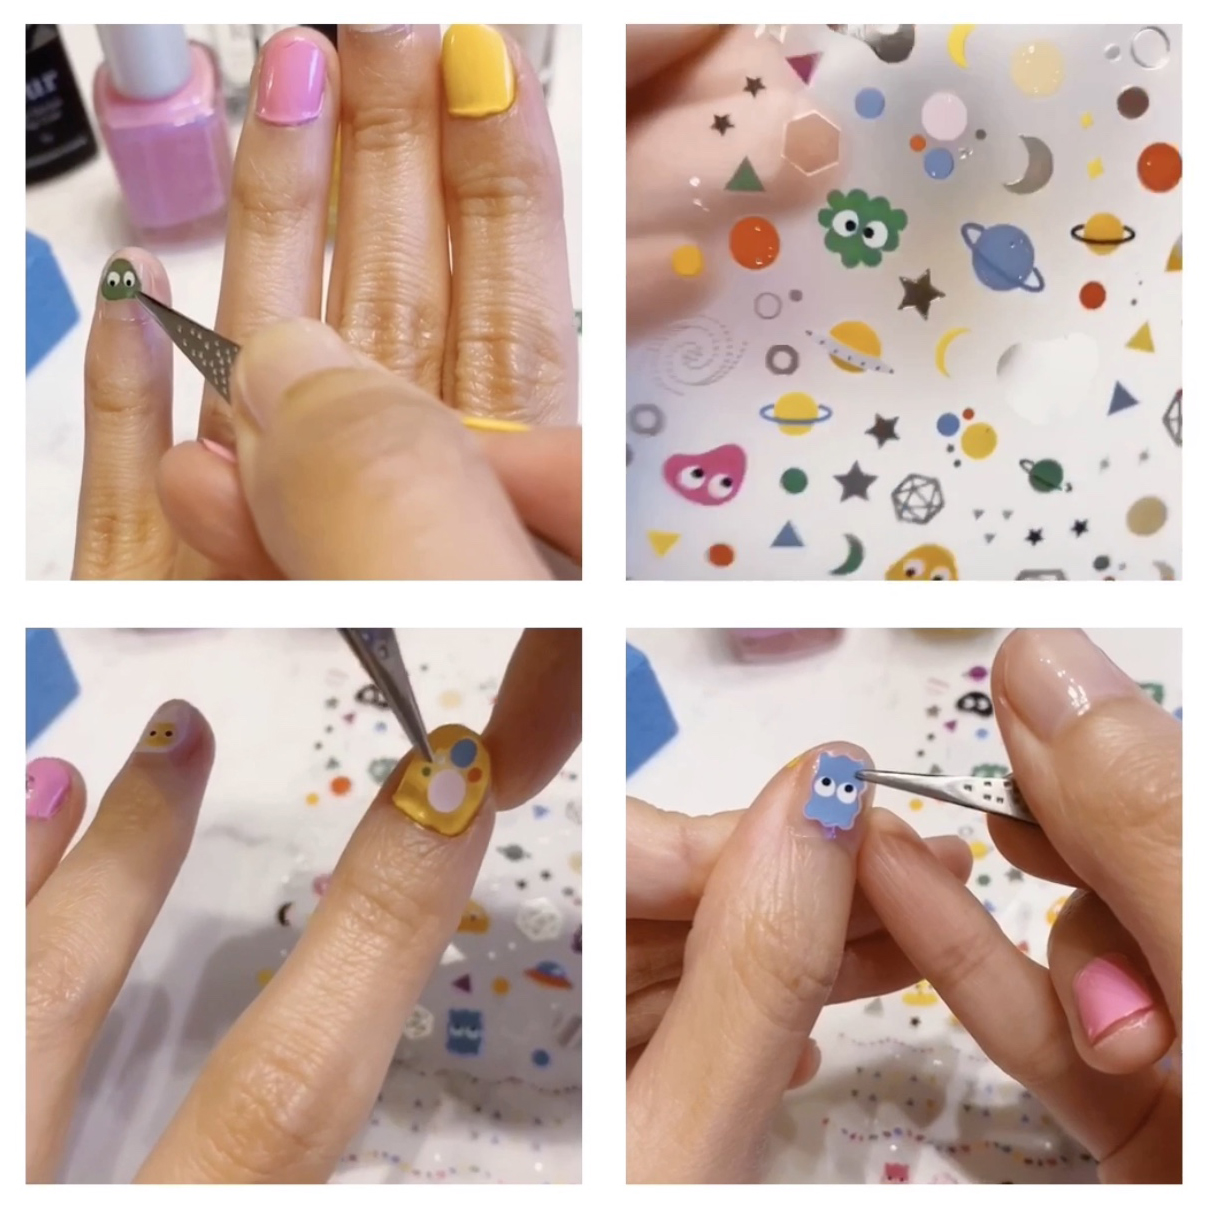 nail sticker art manicure